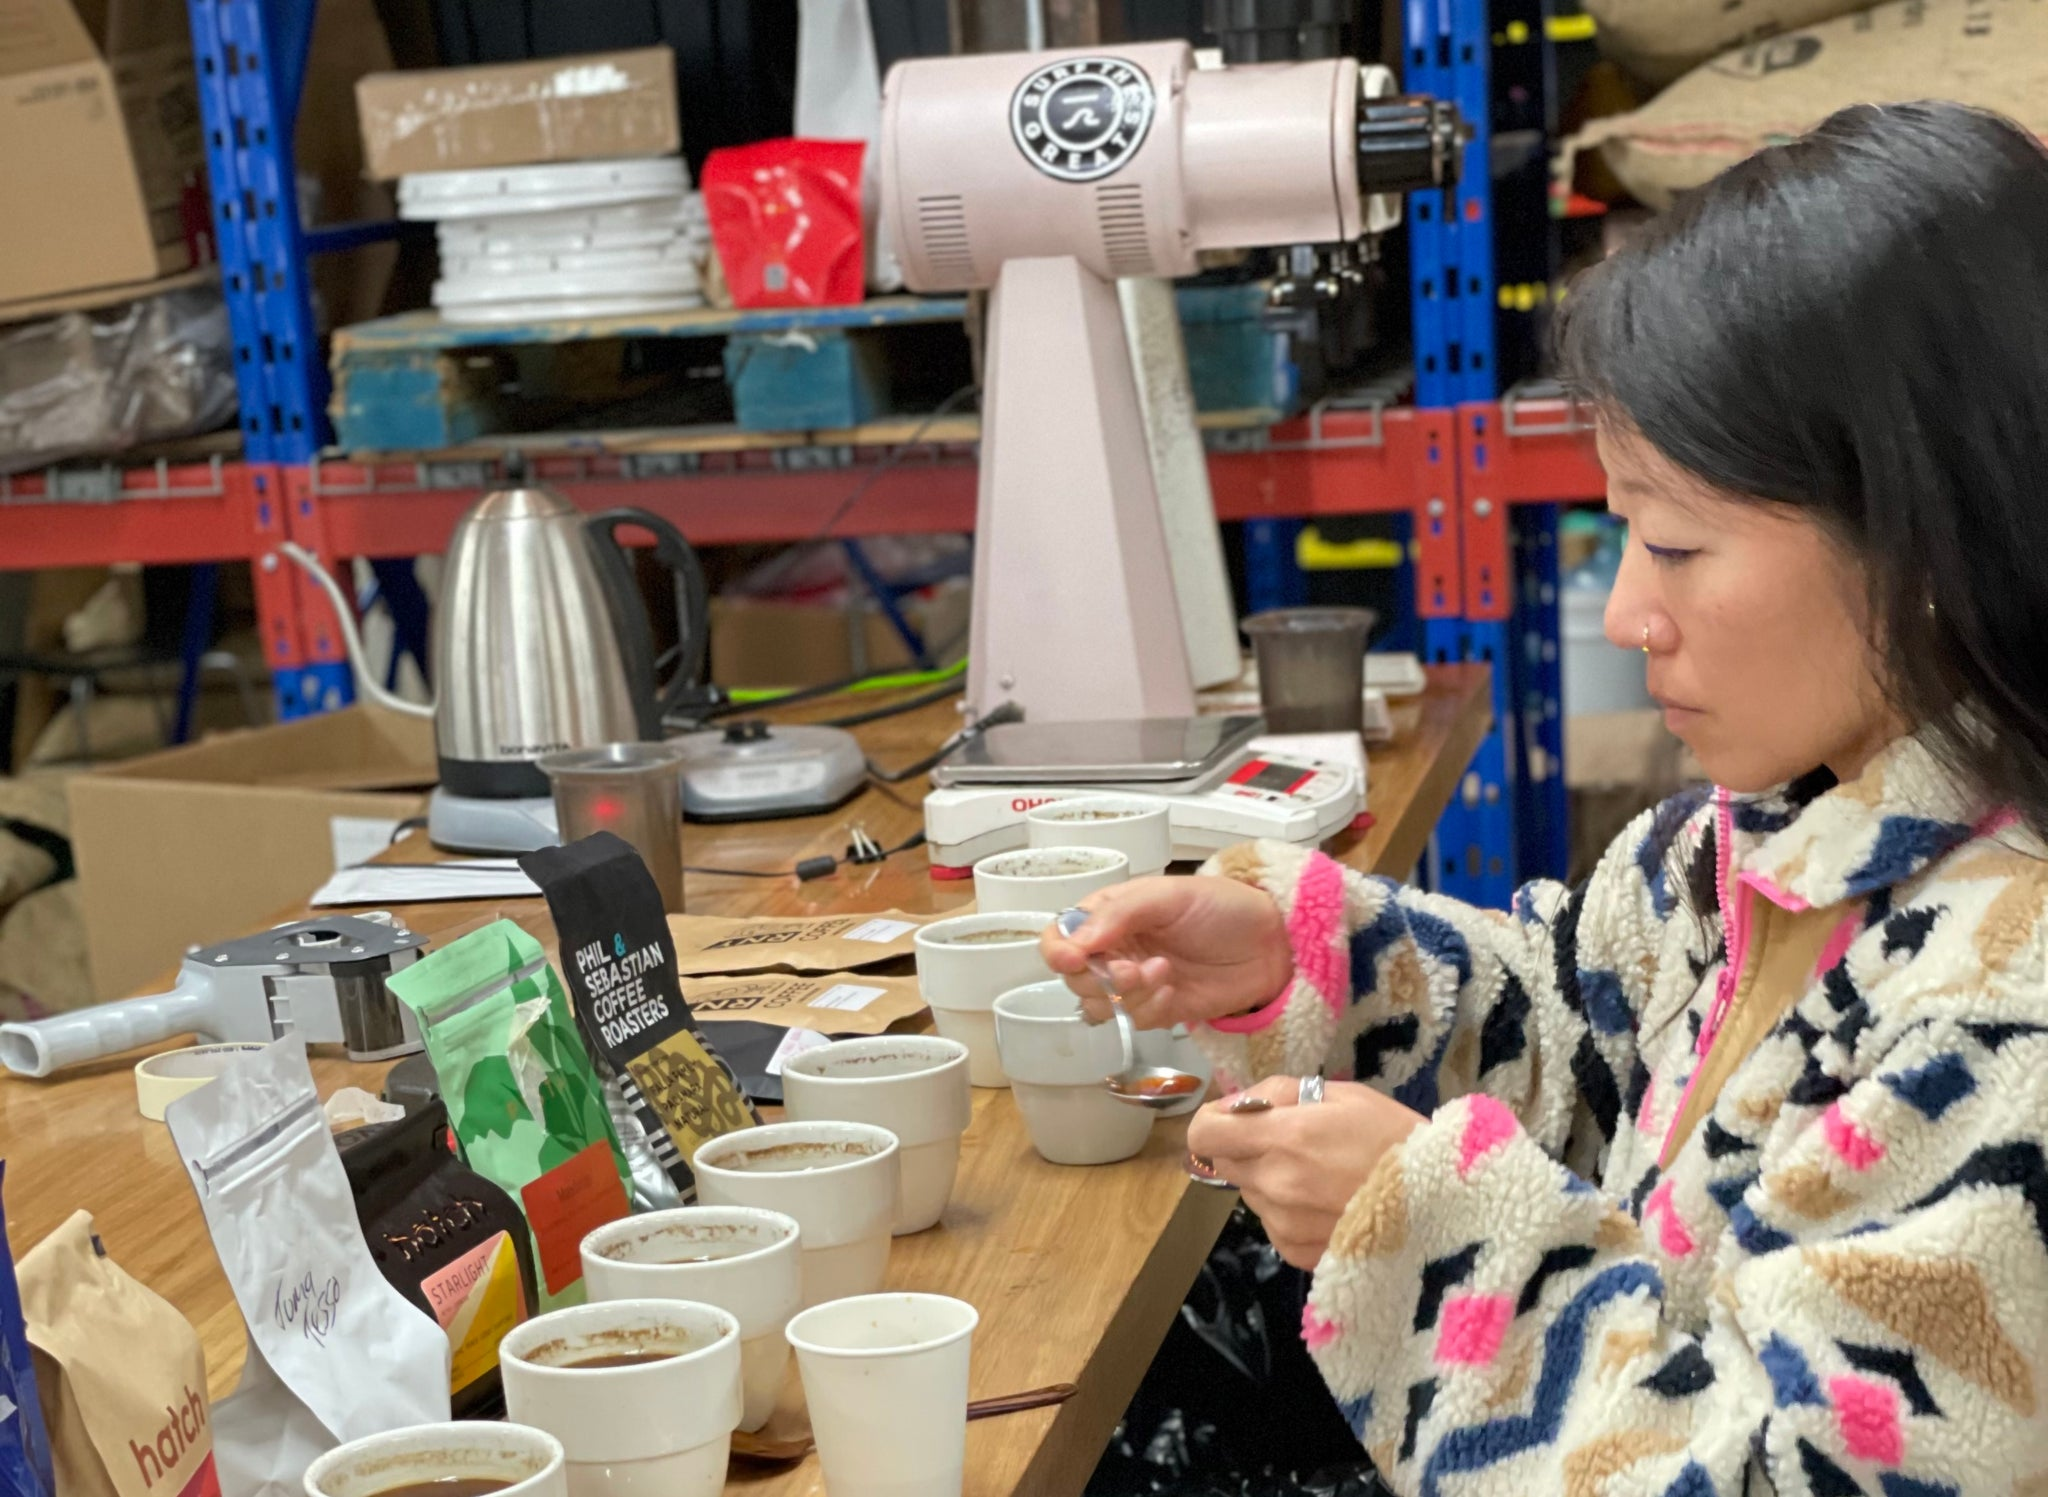 Melanie Leeson cupping coffee from different roasters